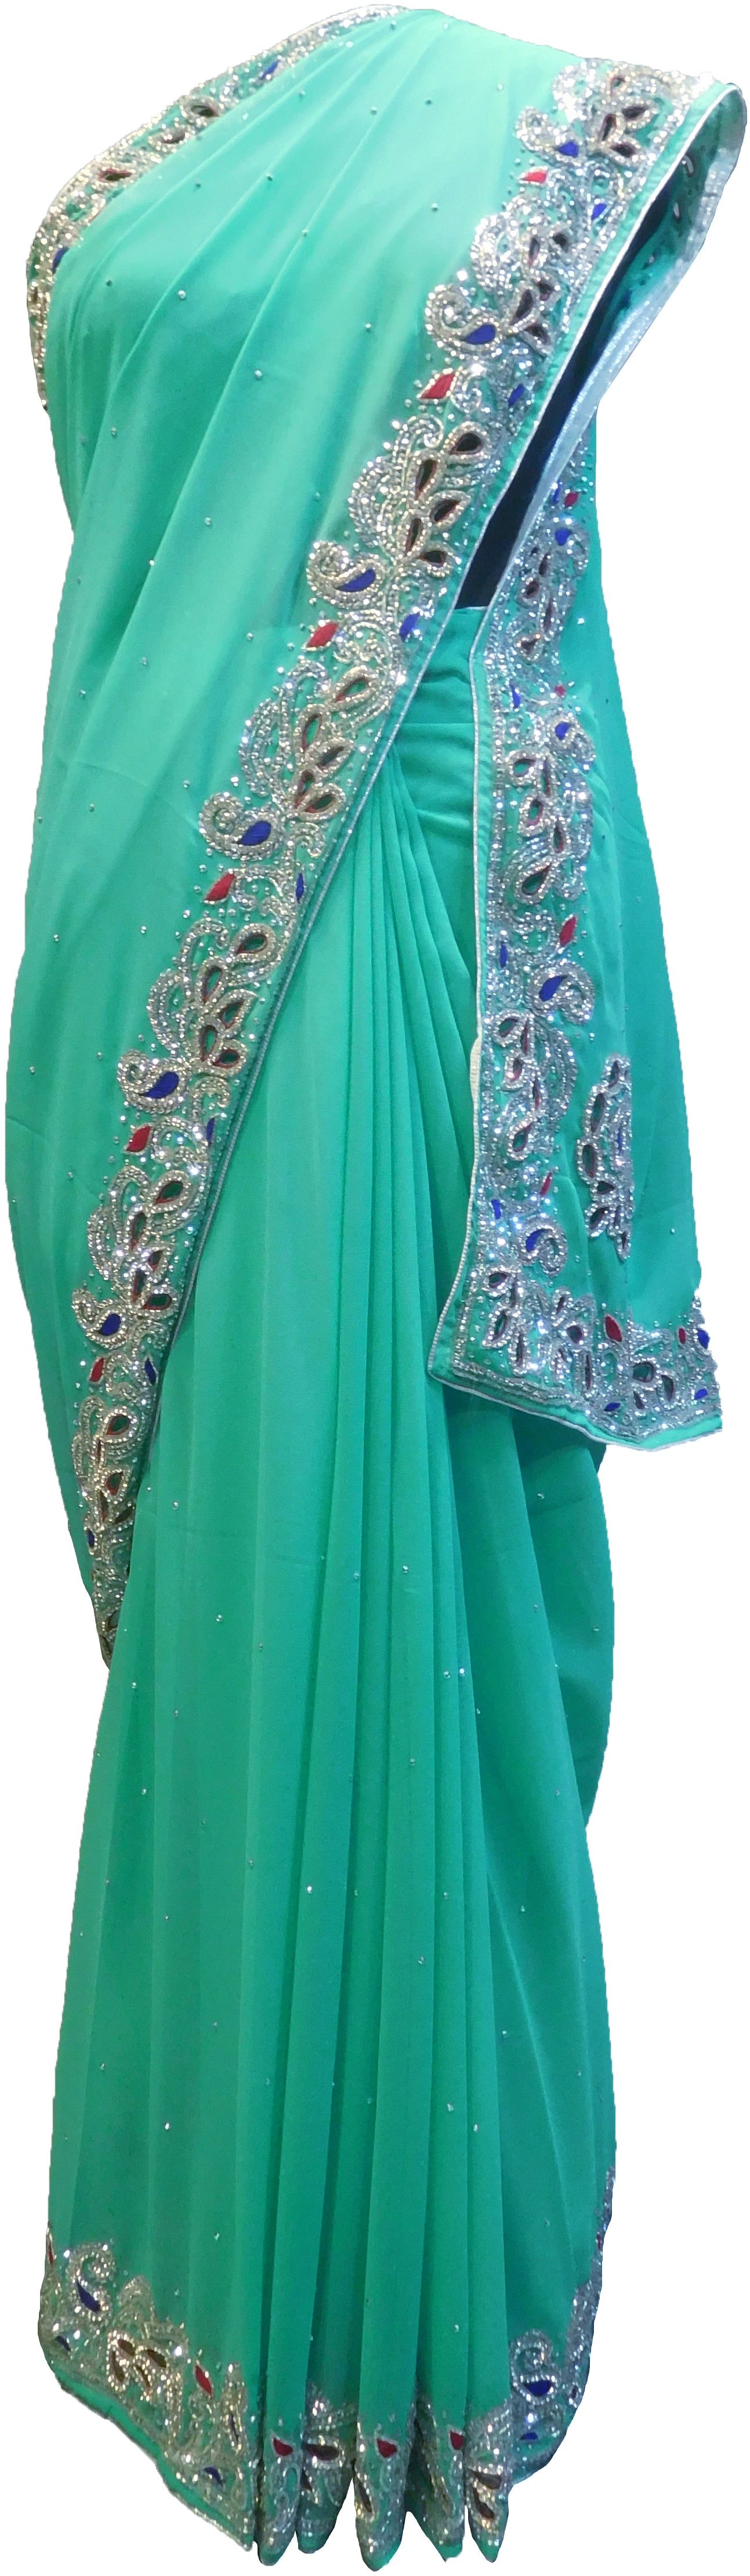 SMSAREE Turquoise Designer Wedding Partywear Georgette Stone Thread & Cutdana Hand Embroidery Work Bridal Saree Sari With Blouse Piece F261